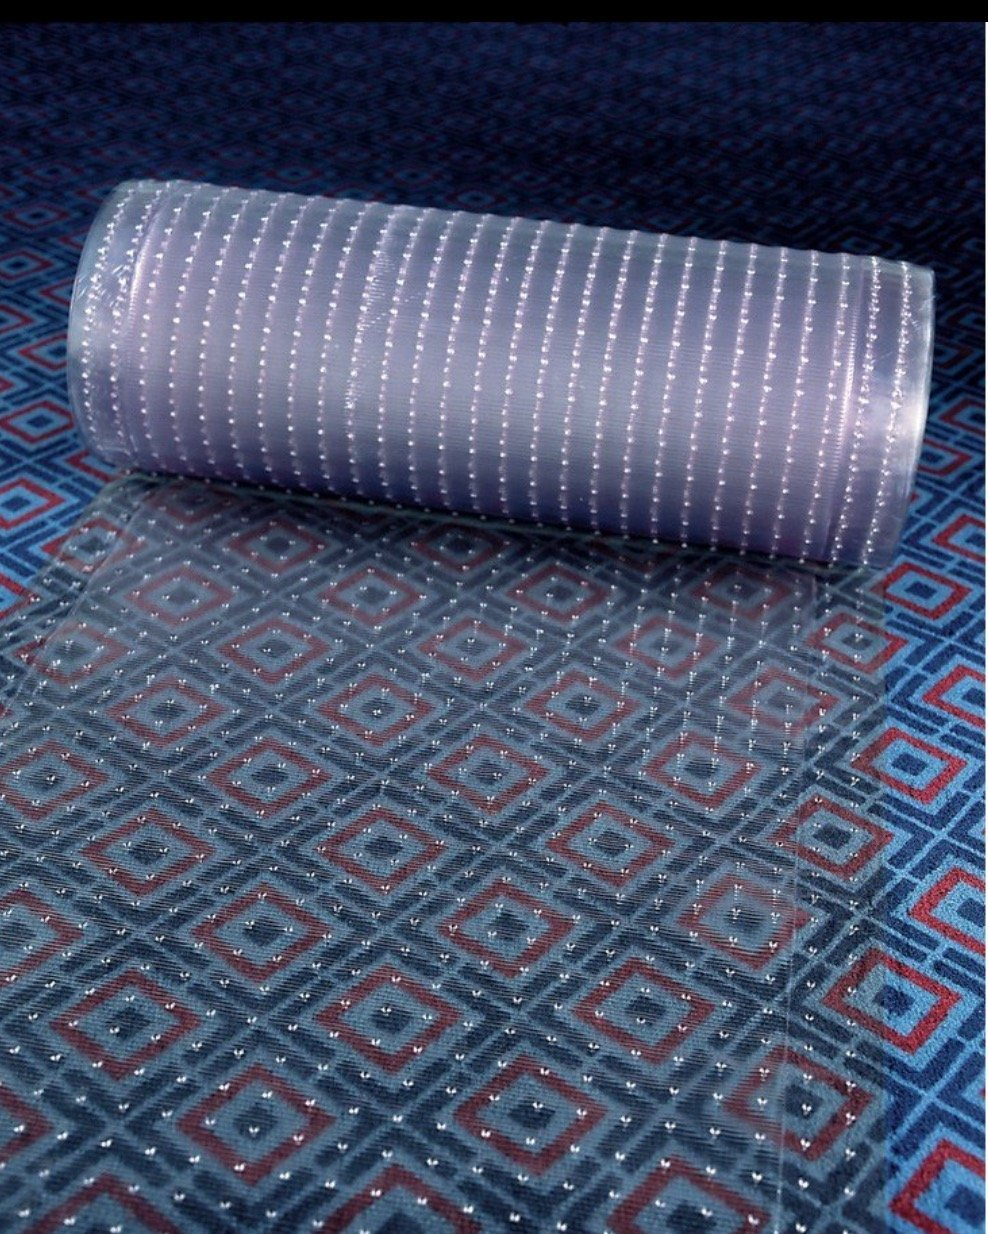 Clear Plastic Runner Rug Carpet Protector Mat Ribbed Multi-Grip (Clear Plastic, 18' in x 26' in) 18 in x 26 in) Made in China